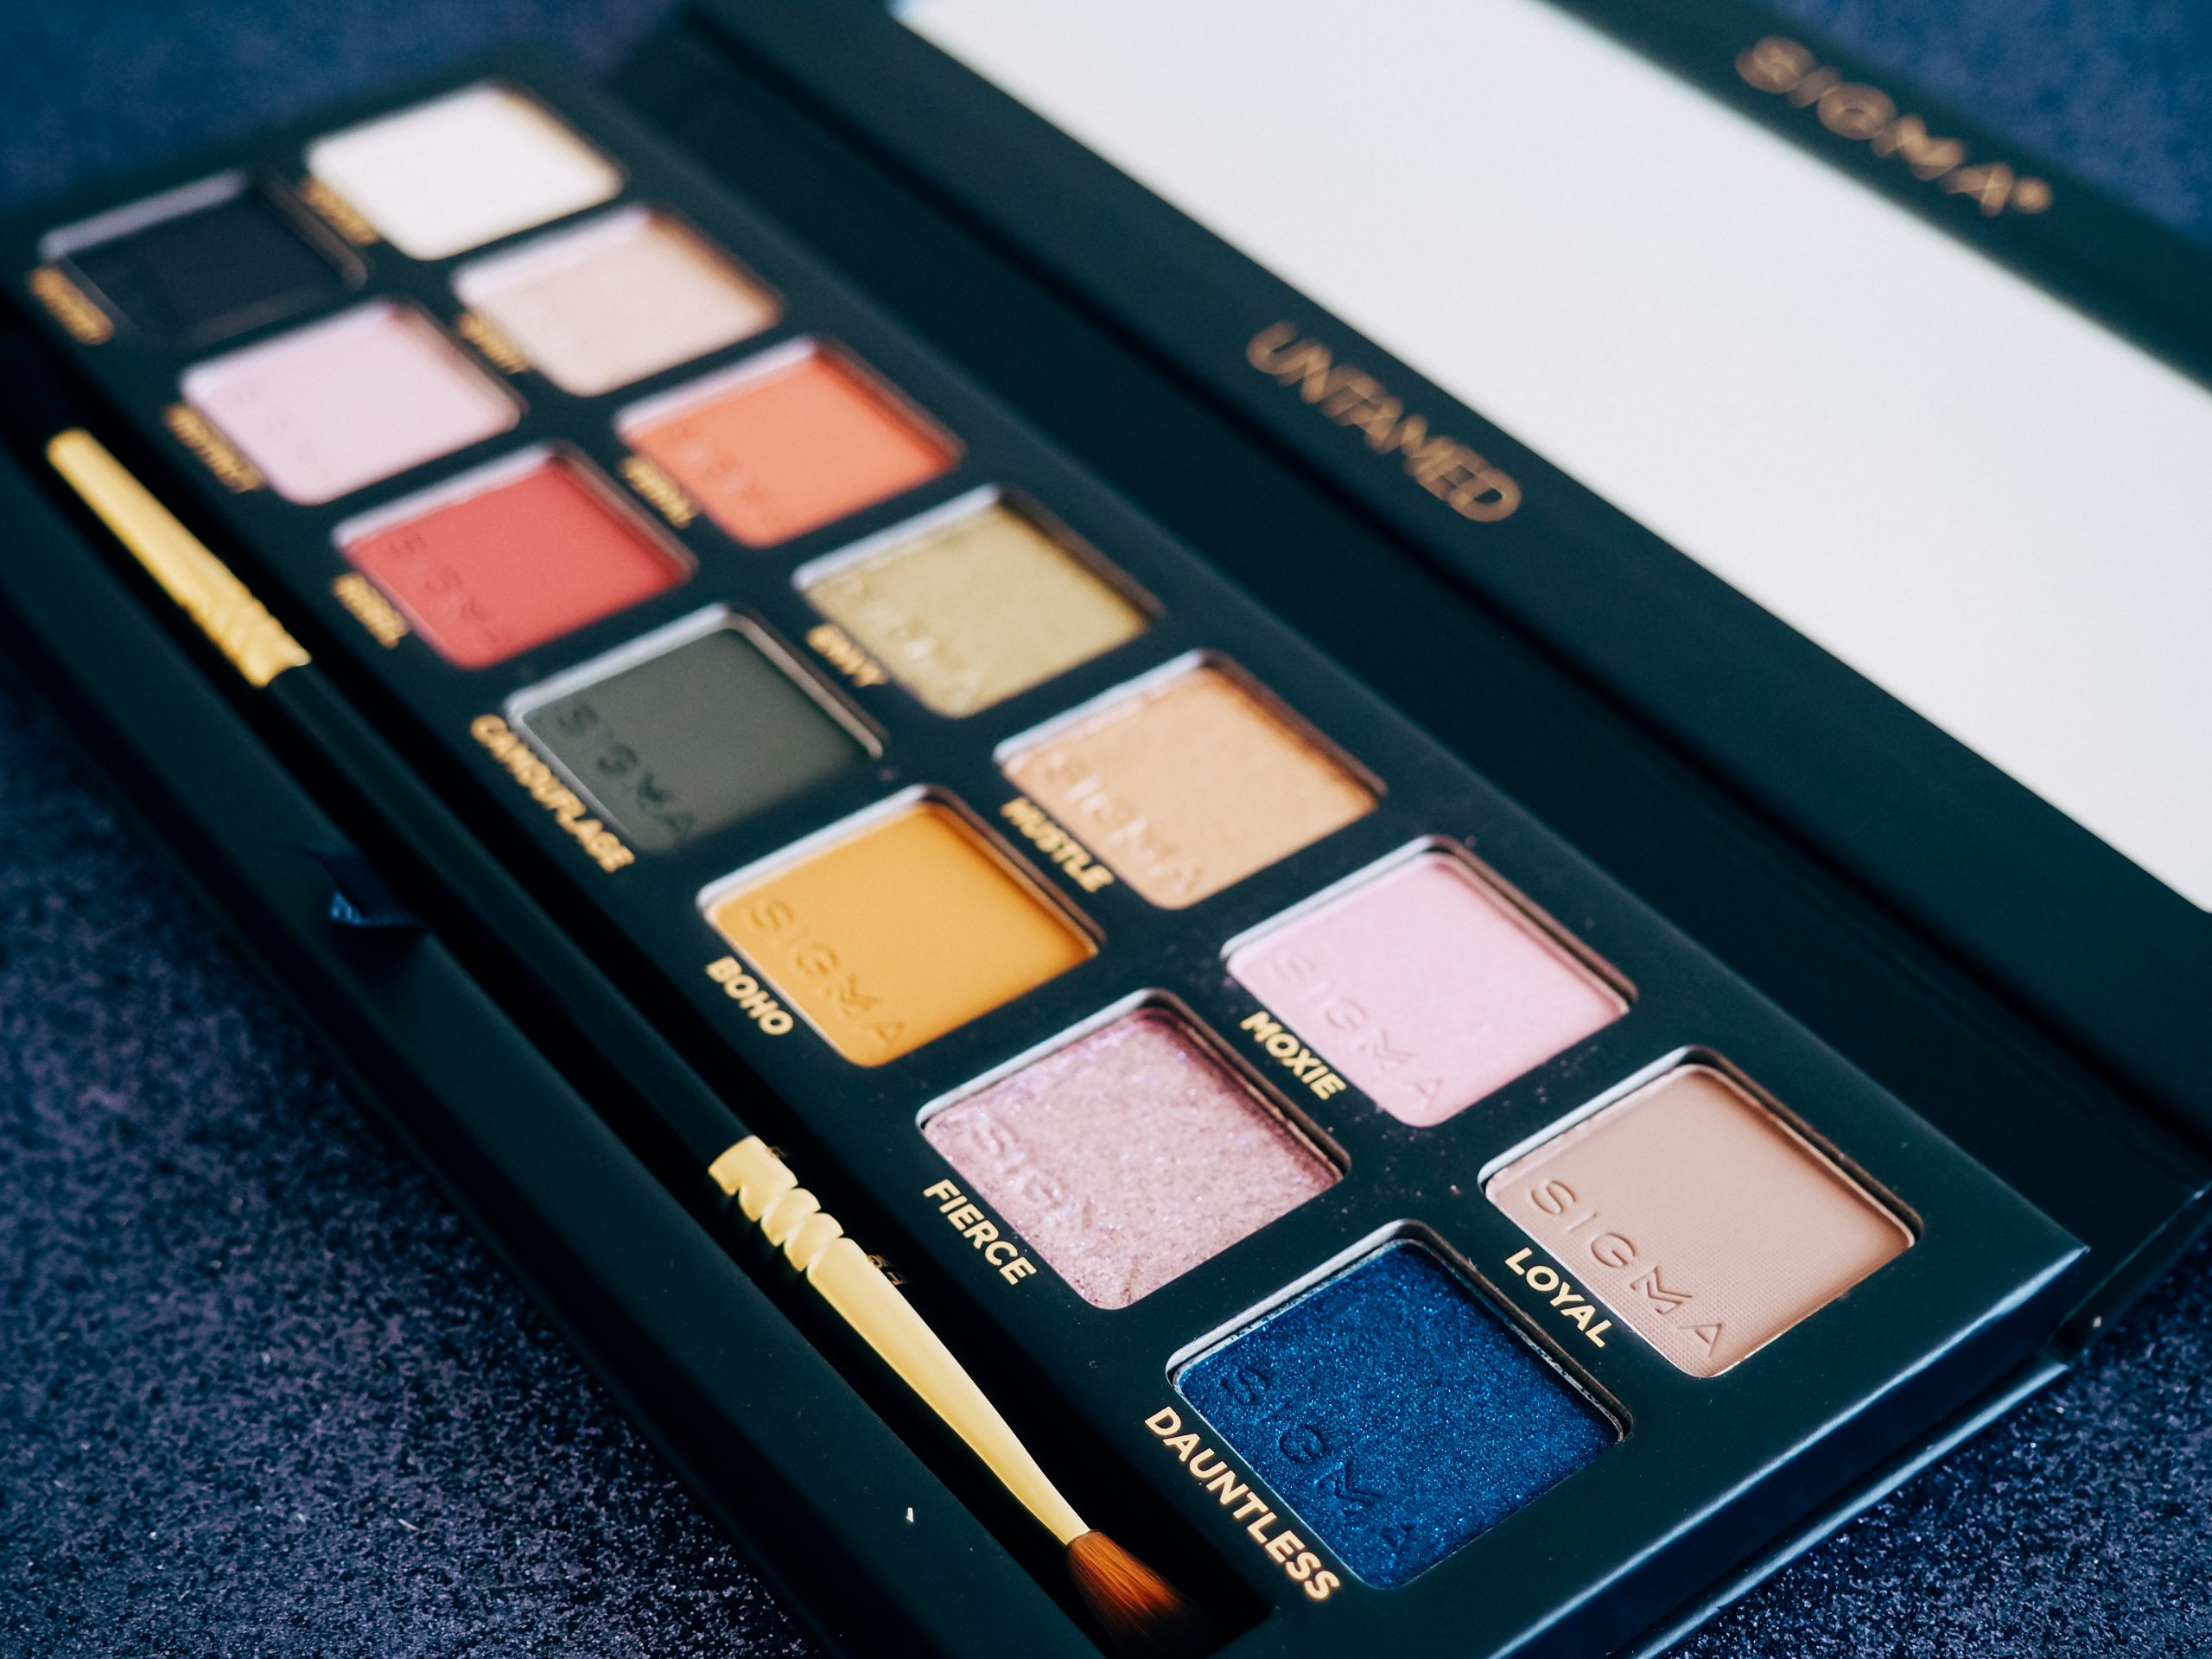 sigma beauty untamed palette